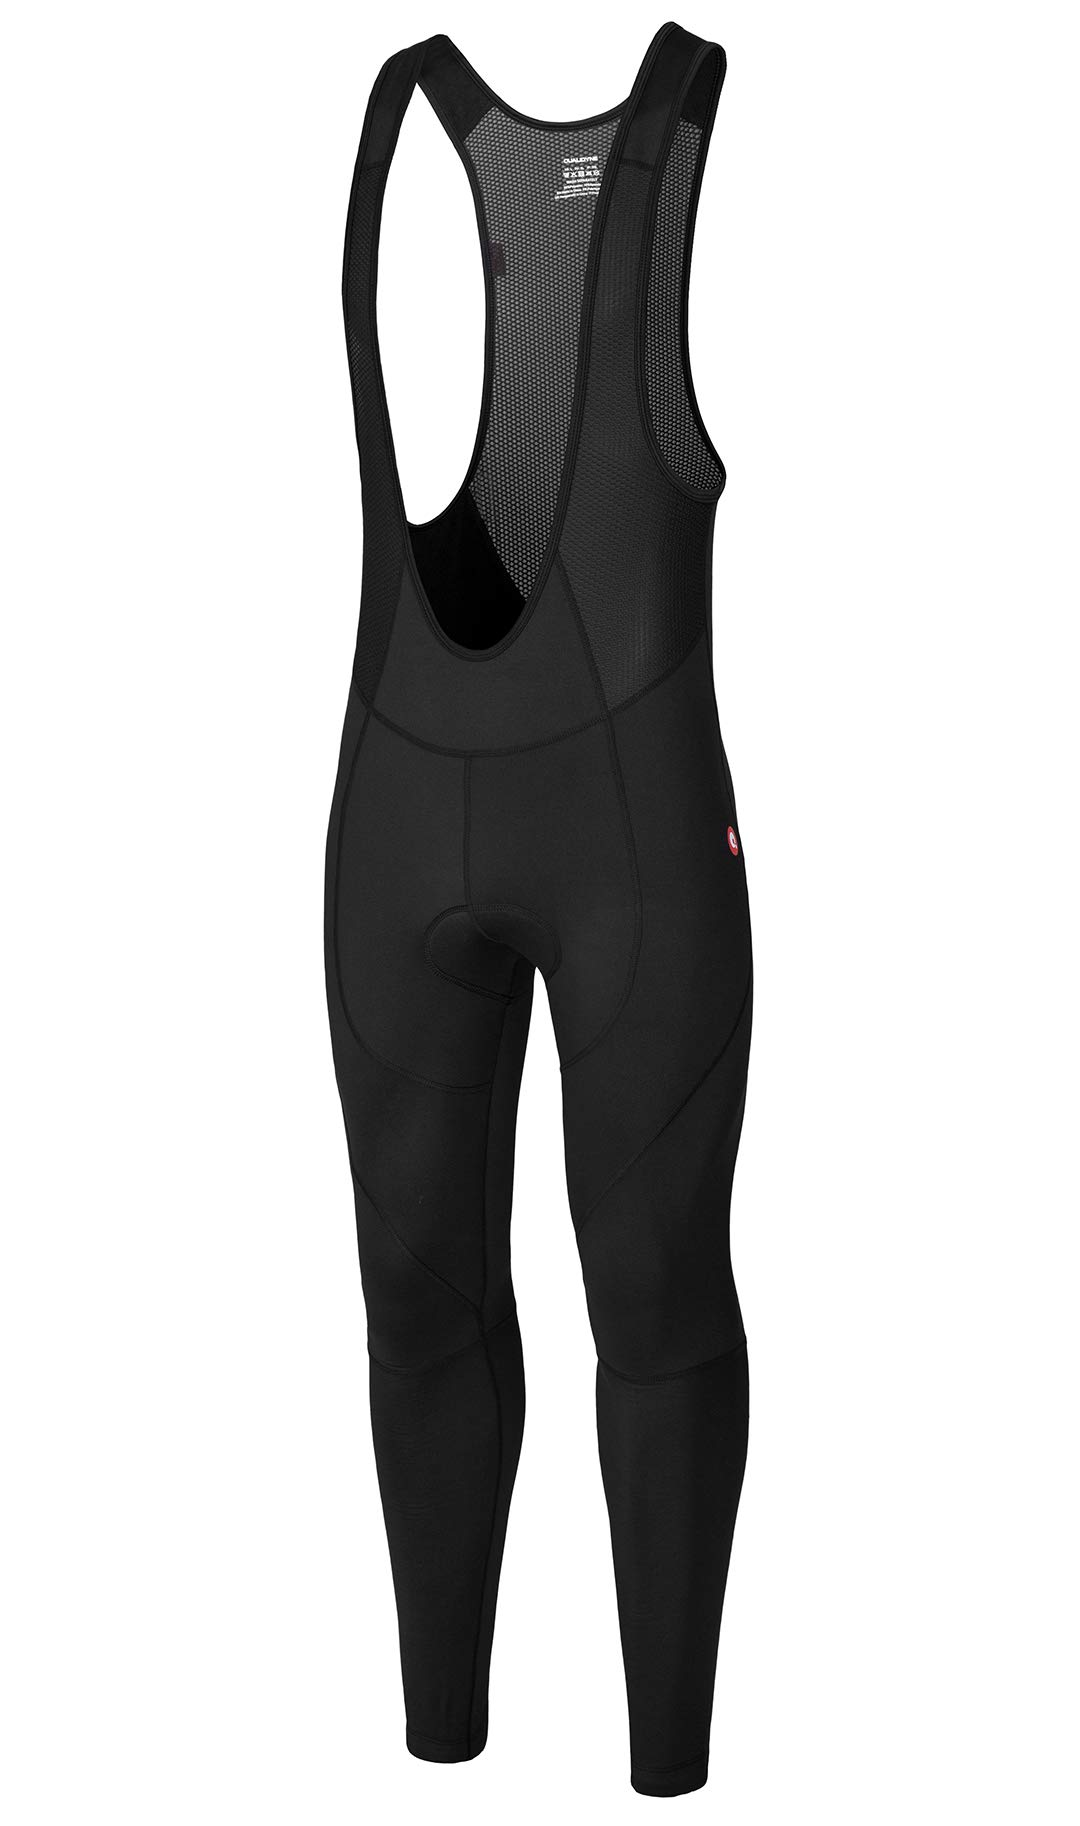 qualidyne Men's Cycling Bike Bib Pants 3D Padded Bike Tights Compression Bicycle Pants, Excellent Performance & Better Fit(Black,2XL) by qualidyne